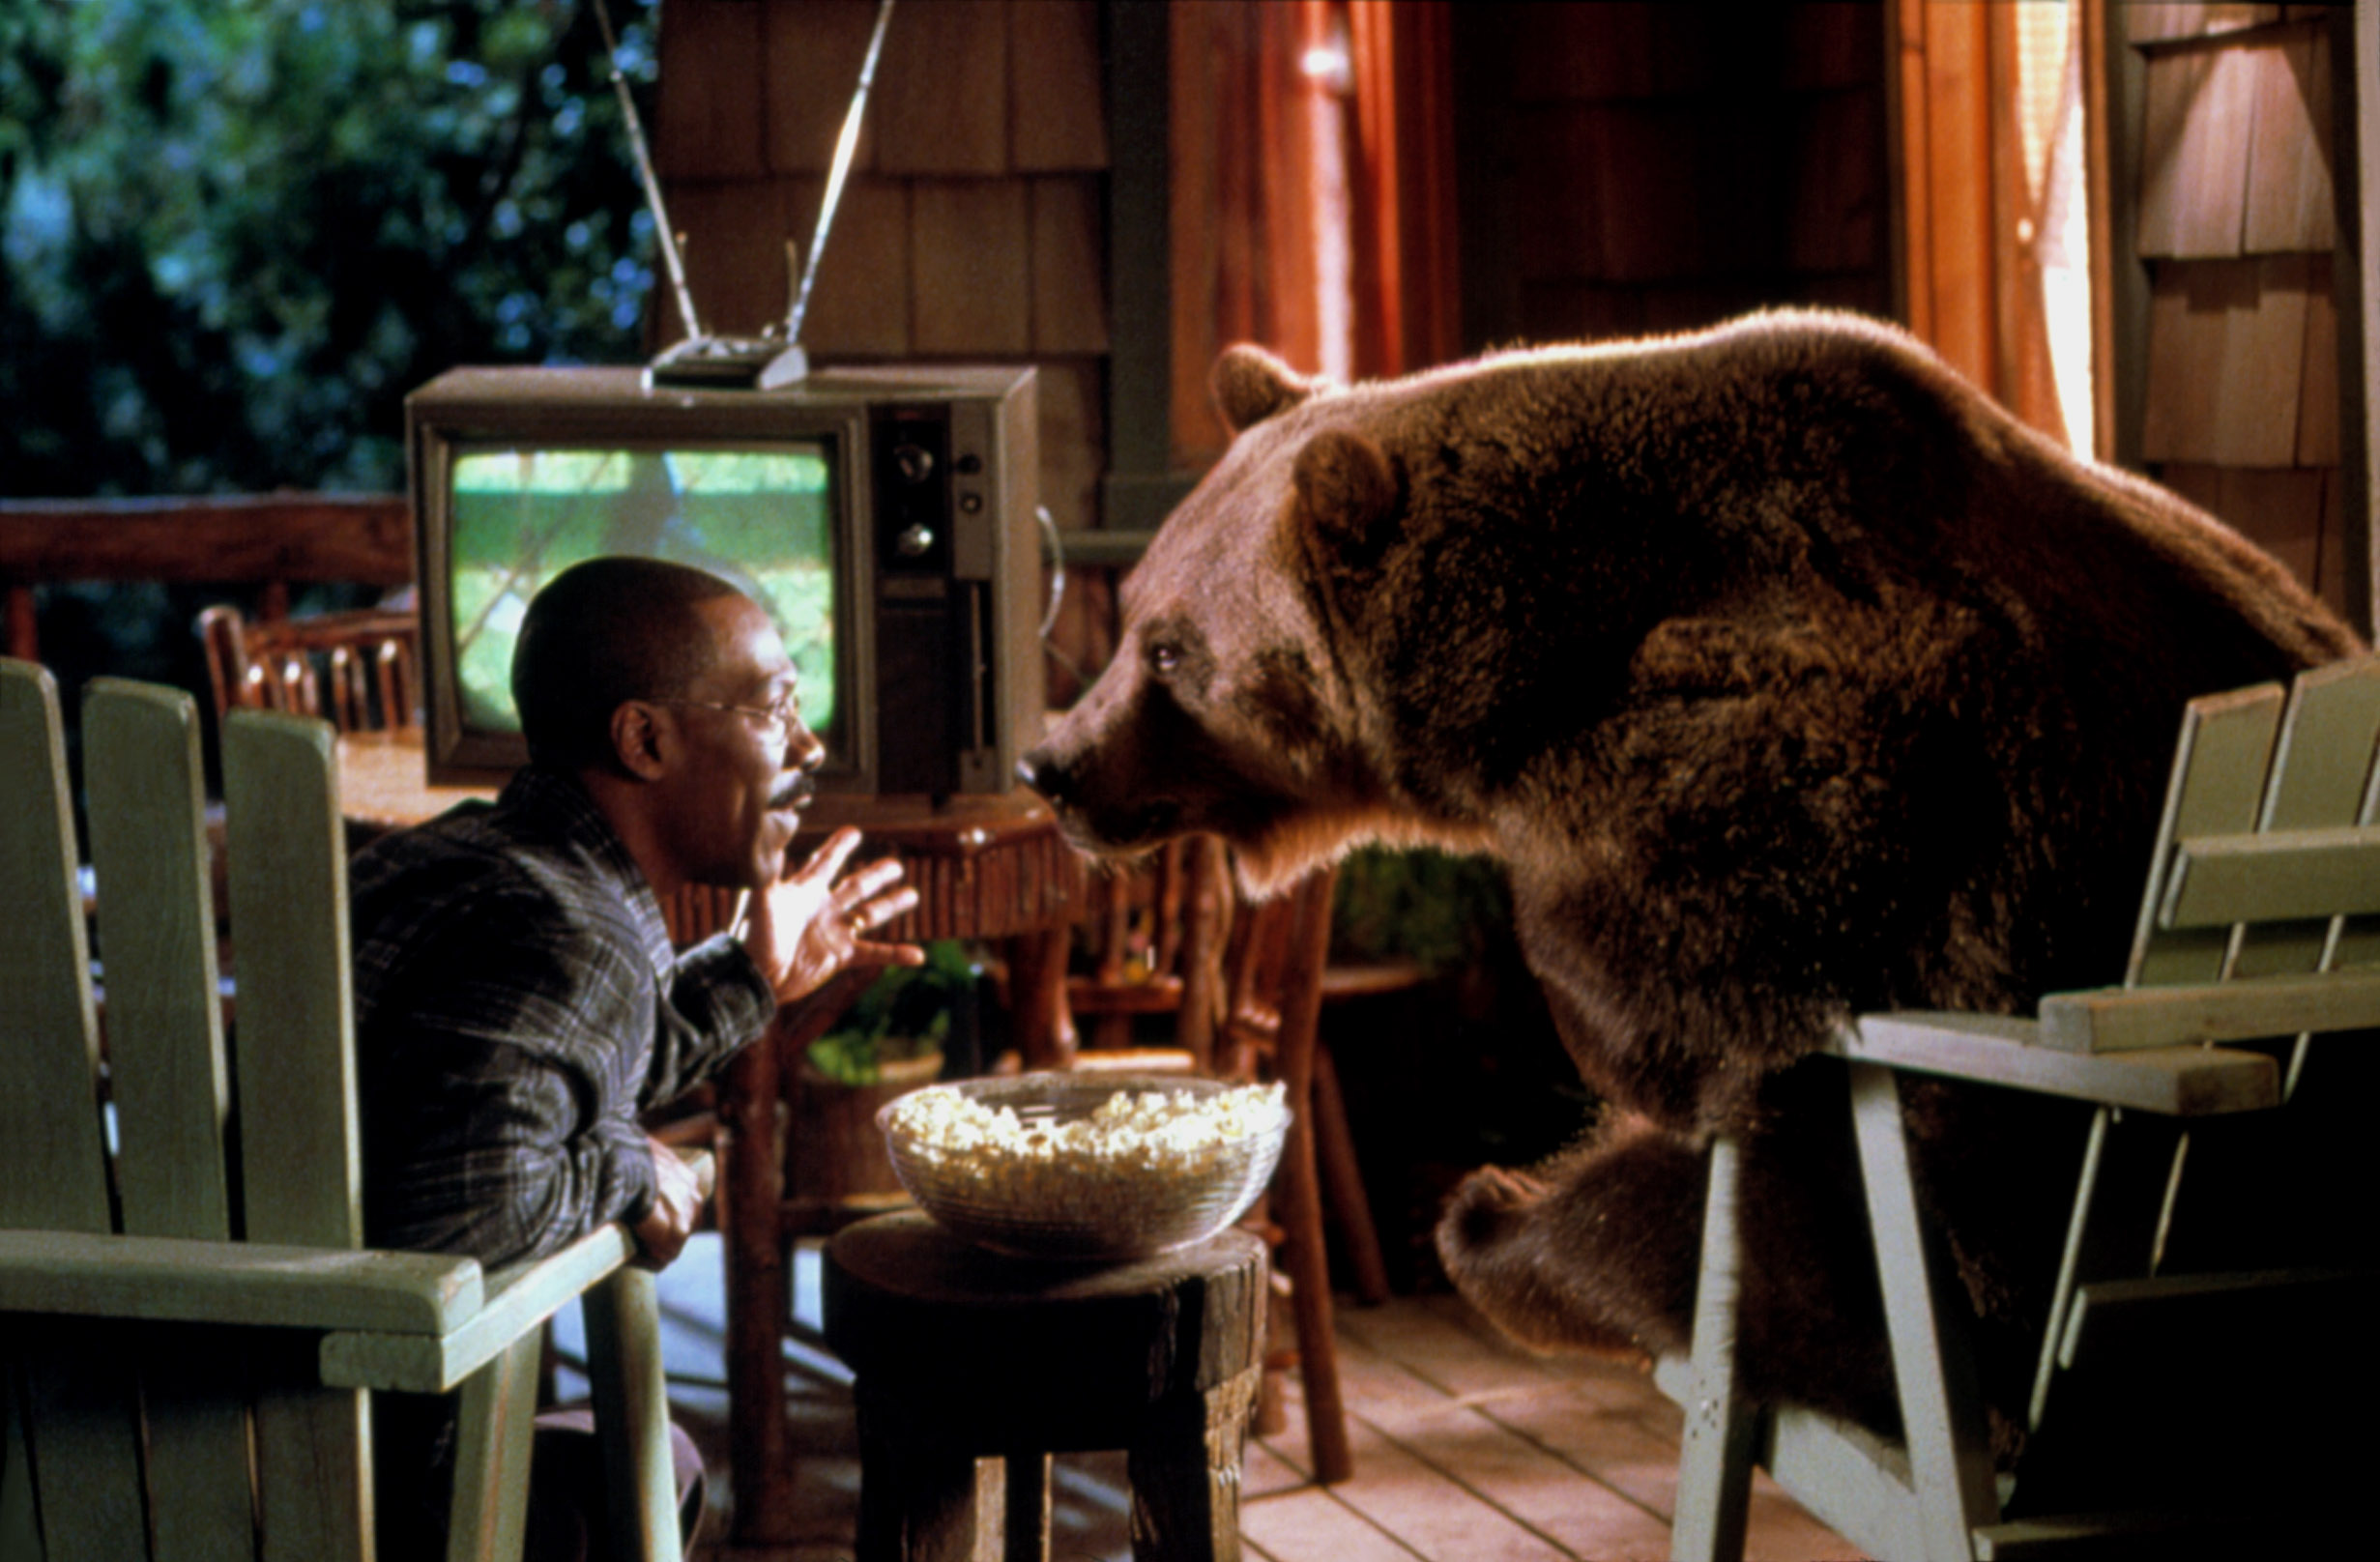 Best in Show: Which Animal Actor Has the Most Talent?